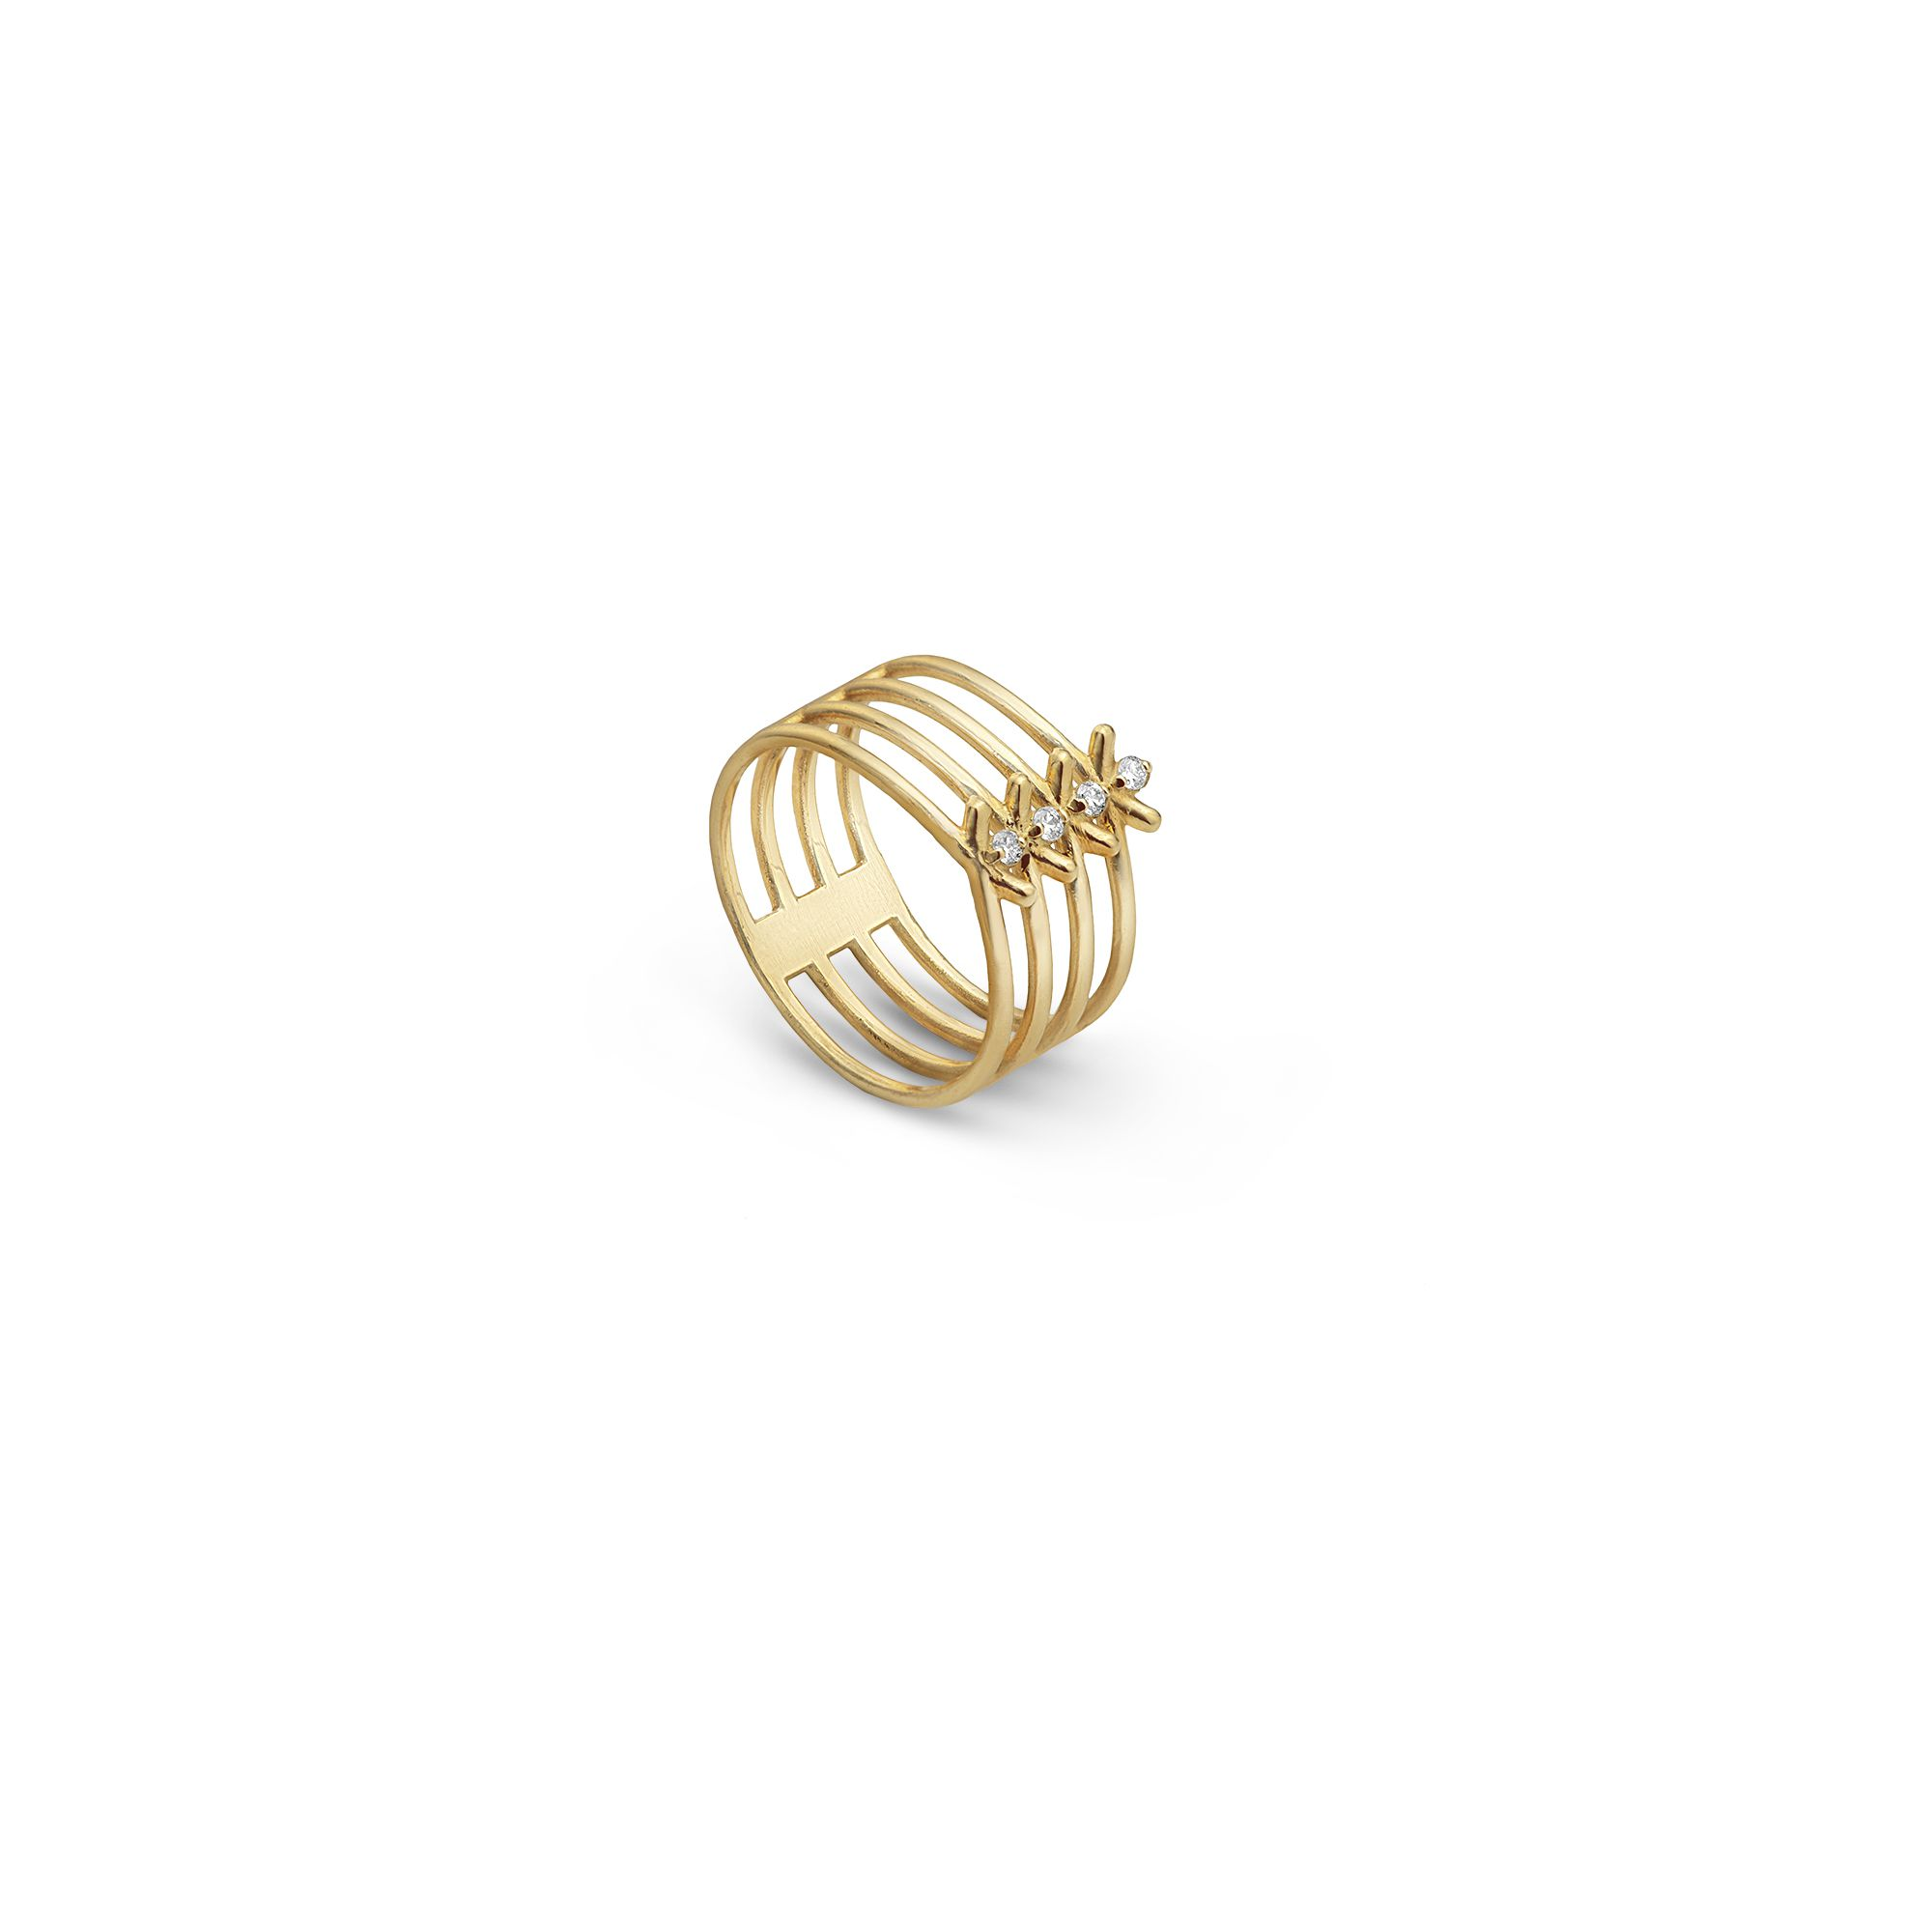 4 element 'Spinae' ring Yellow gold ring with diamonds